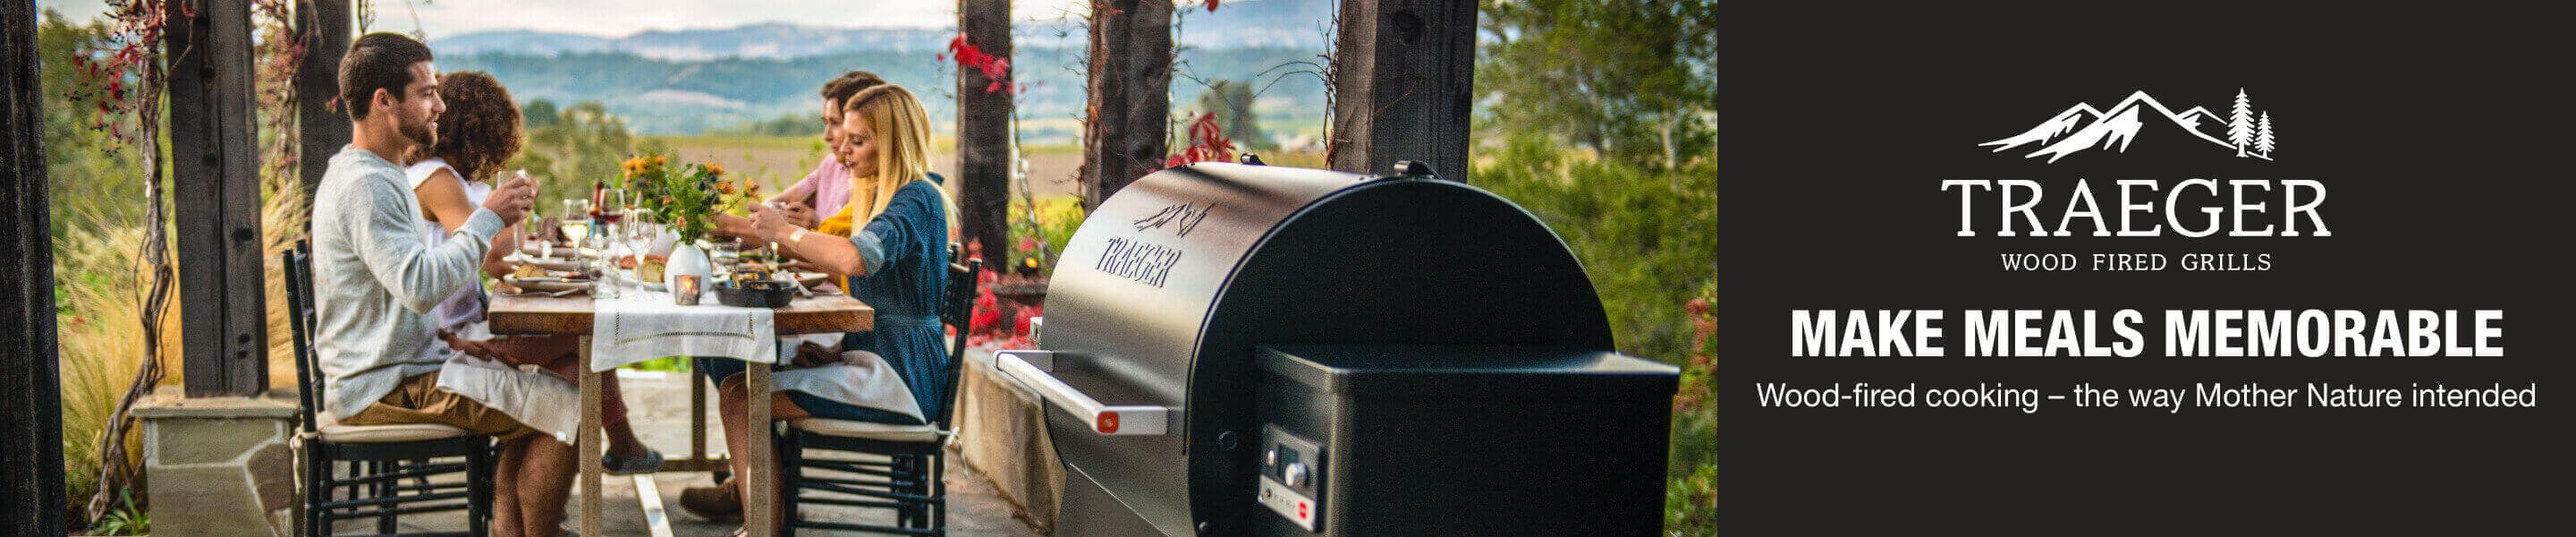 Make Meals Memorable. Wood-fired cooking – the way Mother Nature intended